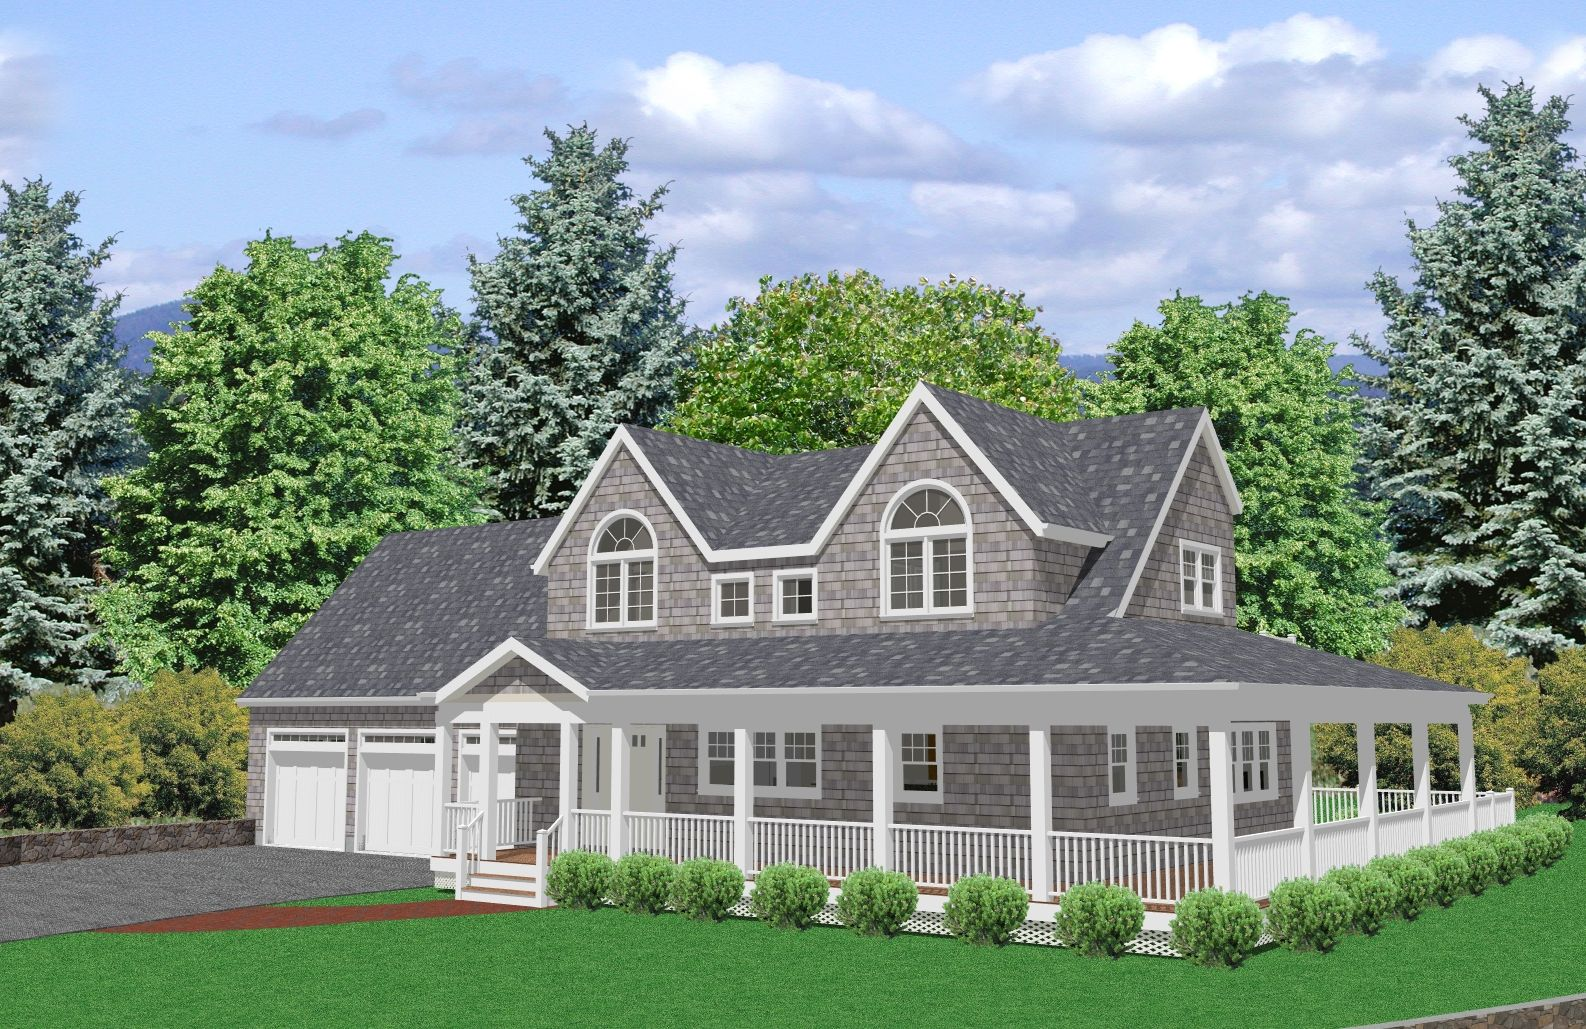 cape cod style house plans 2027 sq ft 3 bedroom cape cod